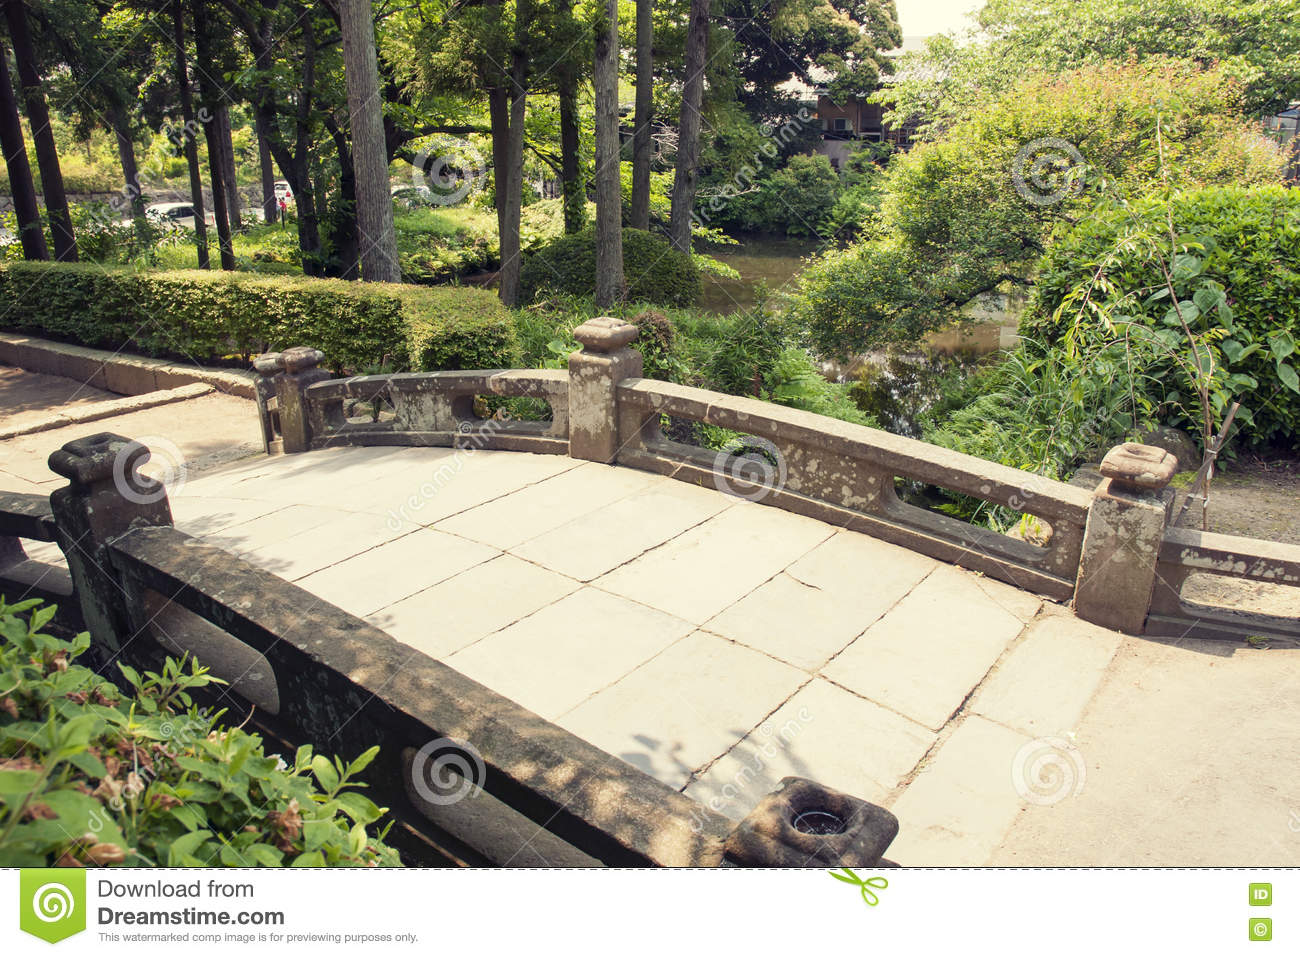 bridge humpbacked park stone summer architecture japan pedestrian garden